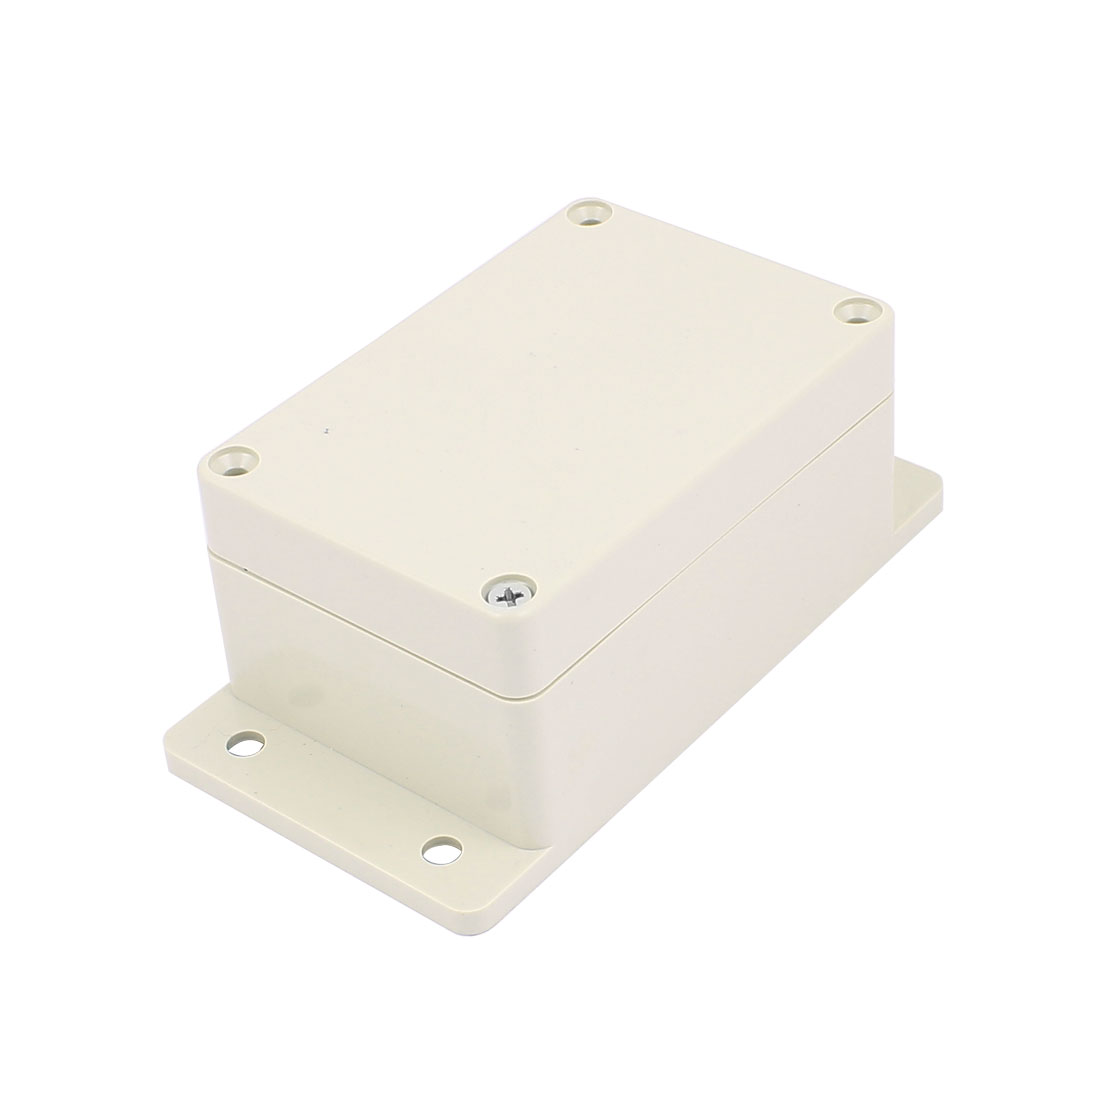 Dustproof IP65 Junction Box DIY Terminal Connection Enclosure Adaptable 92mm x 60mm x 42mm